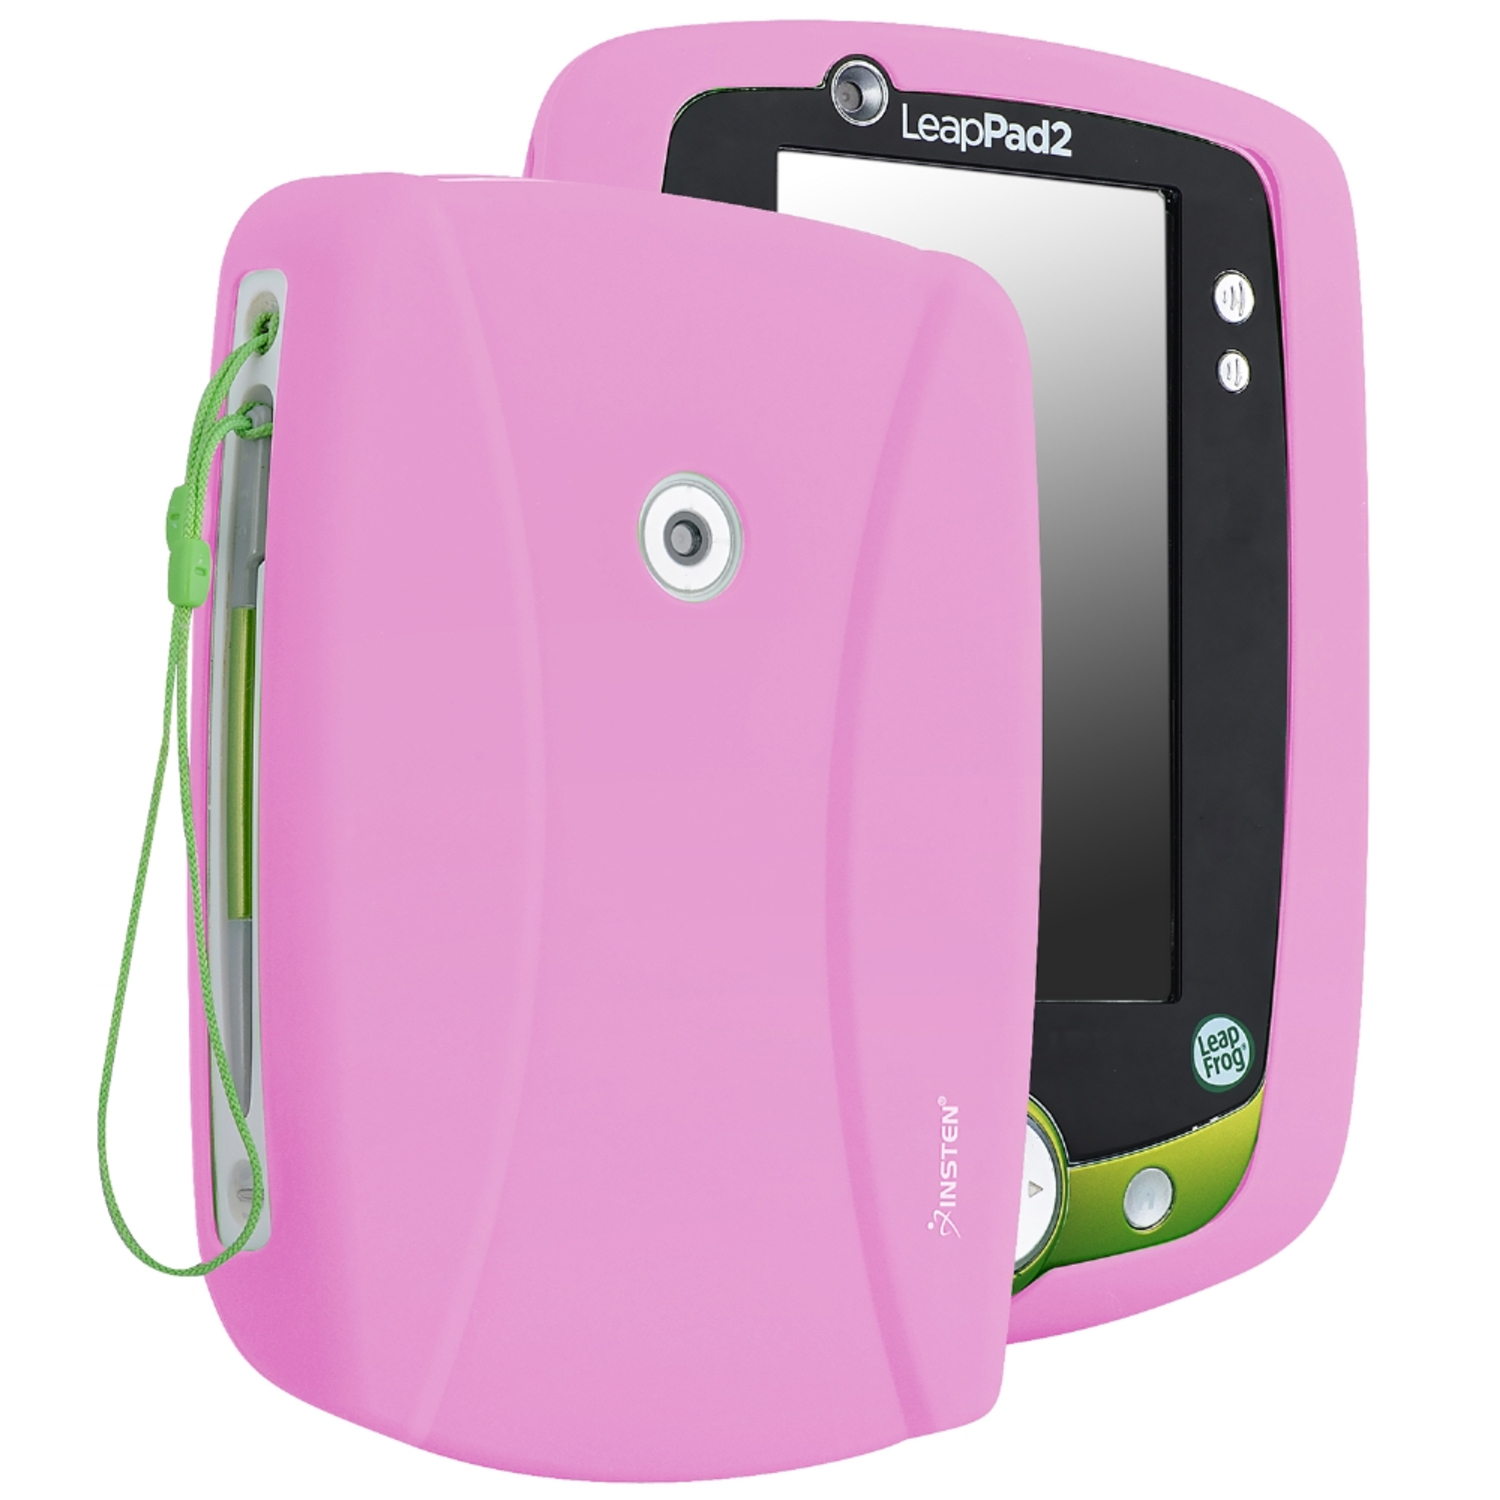 Insten Silicone Skin Case For Leapfrog LeapPad 2, Baby Pink